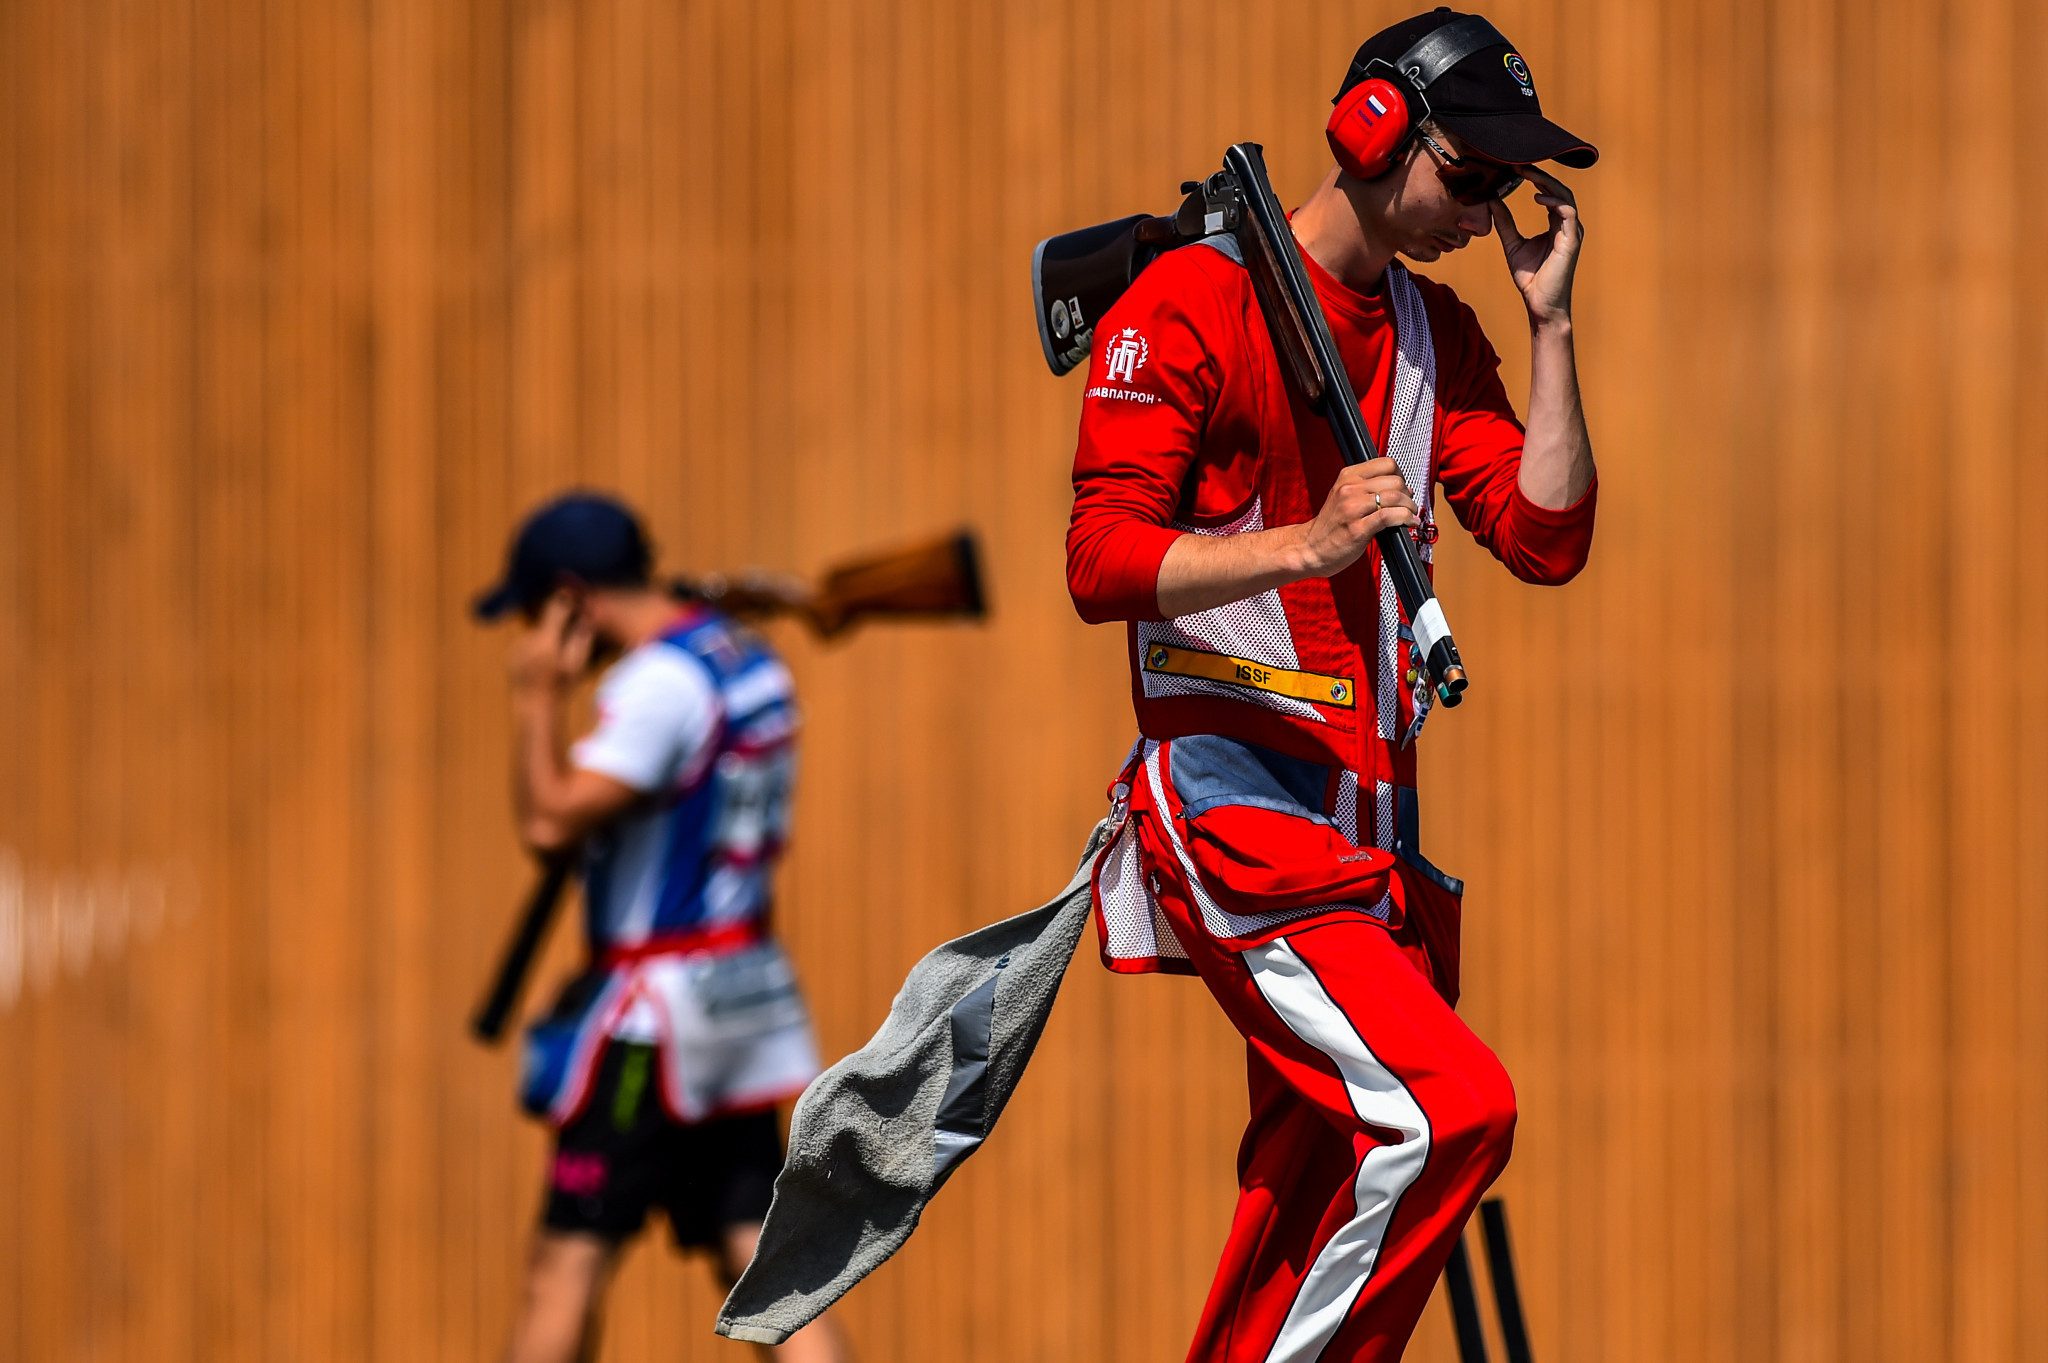 Russia's Alexander Zemlin triumphed in the mixed team skeet event alongside Alina Fazylzyanova at the ISSF Shotgun World Cup in Cairo today ©Getty Images